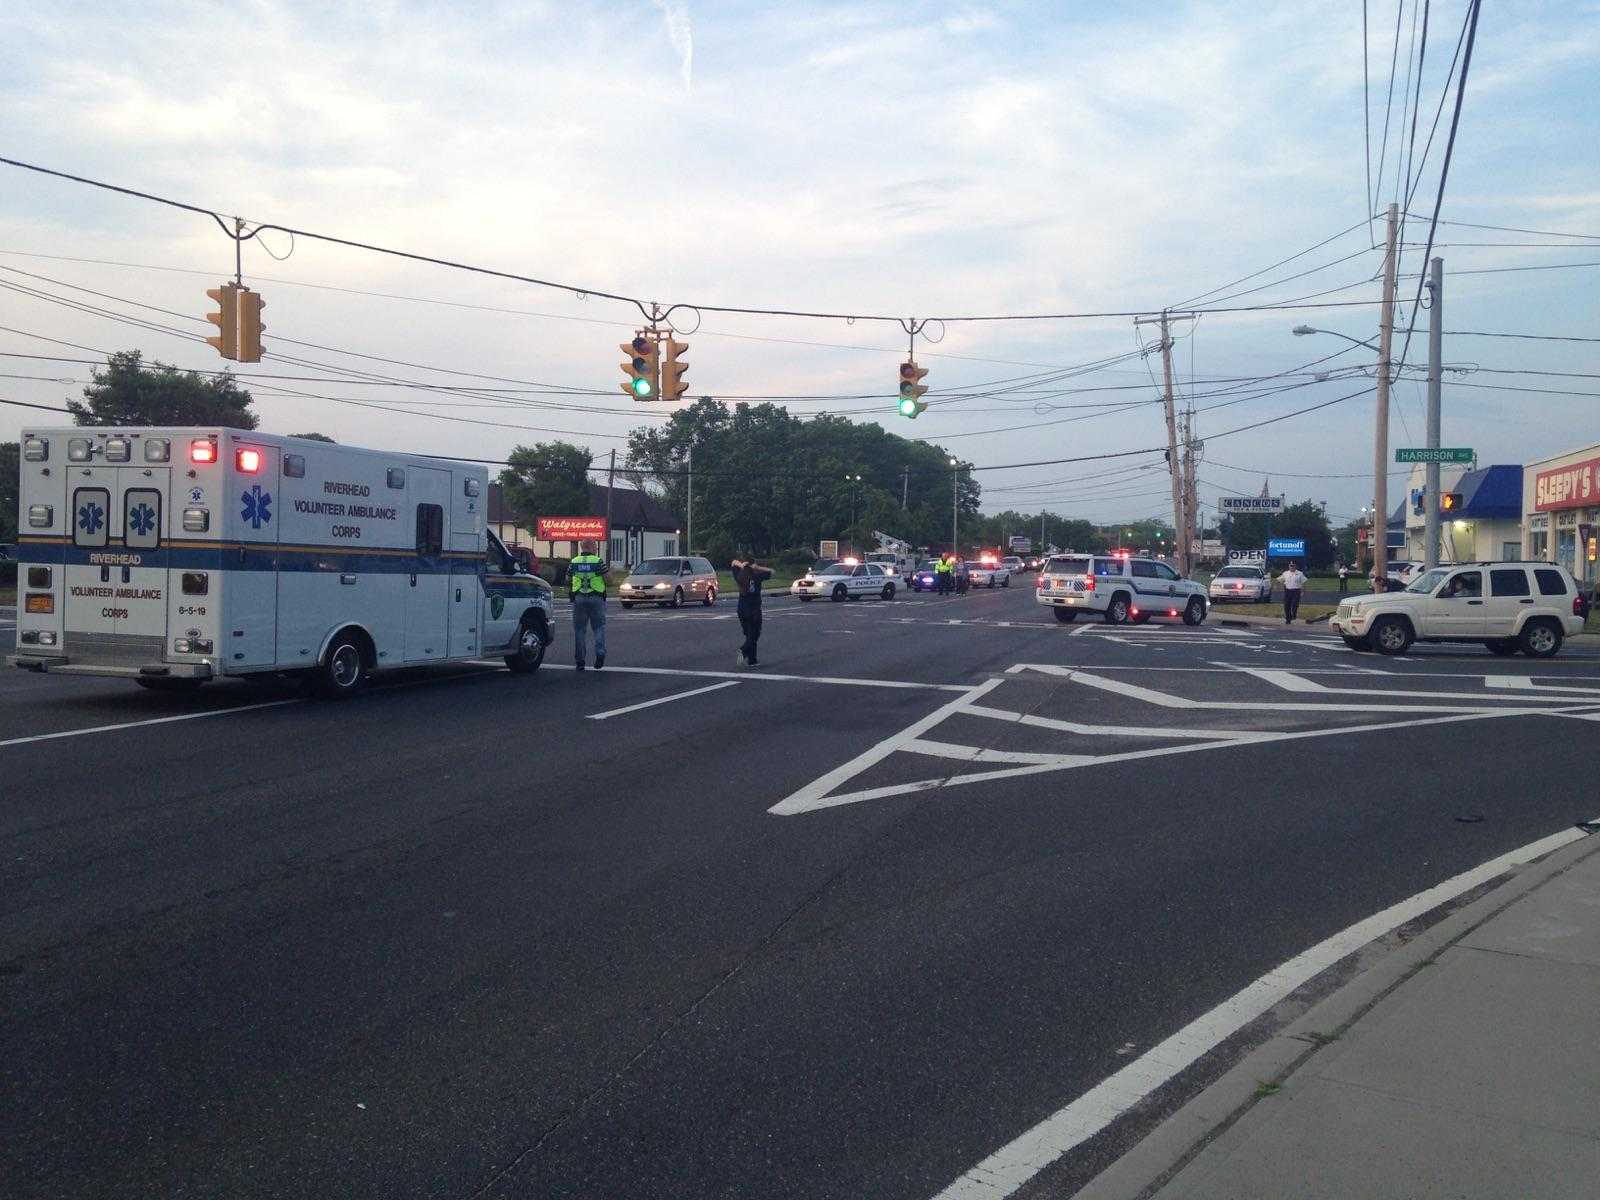 Riverhead police and fire officials at the scene on Route 58 on Monday. (Credit: Nicole Smith)